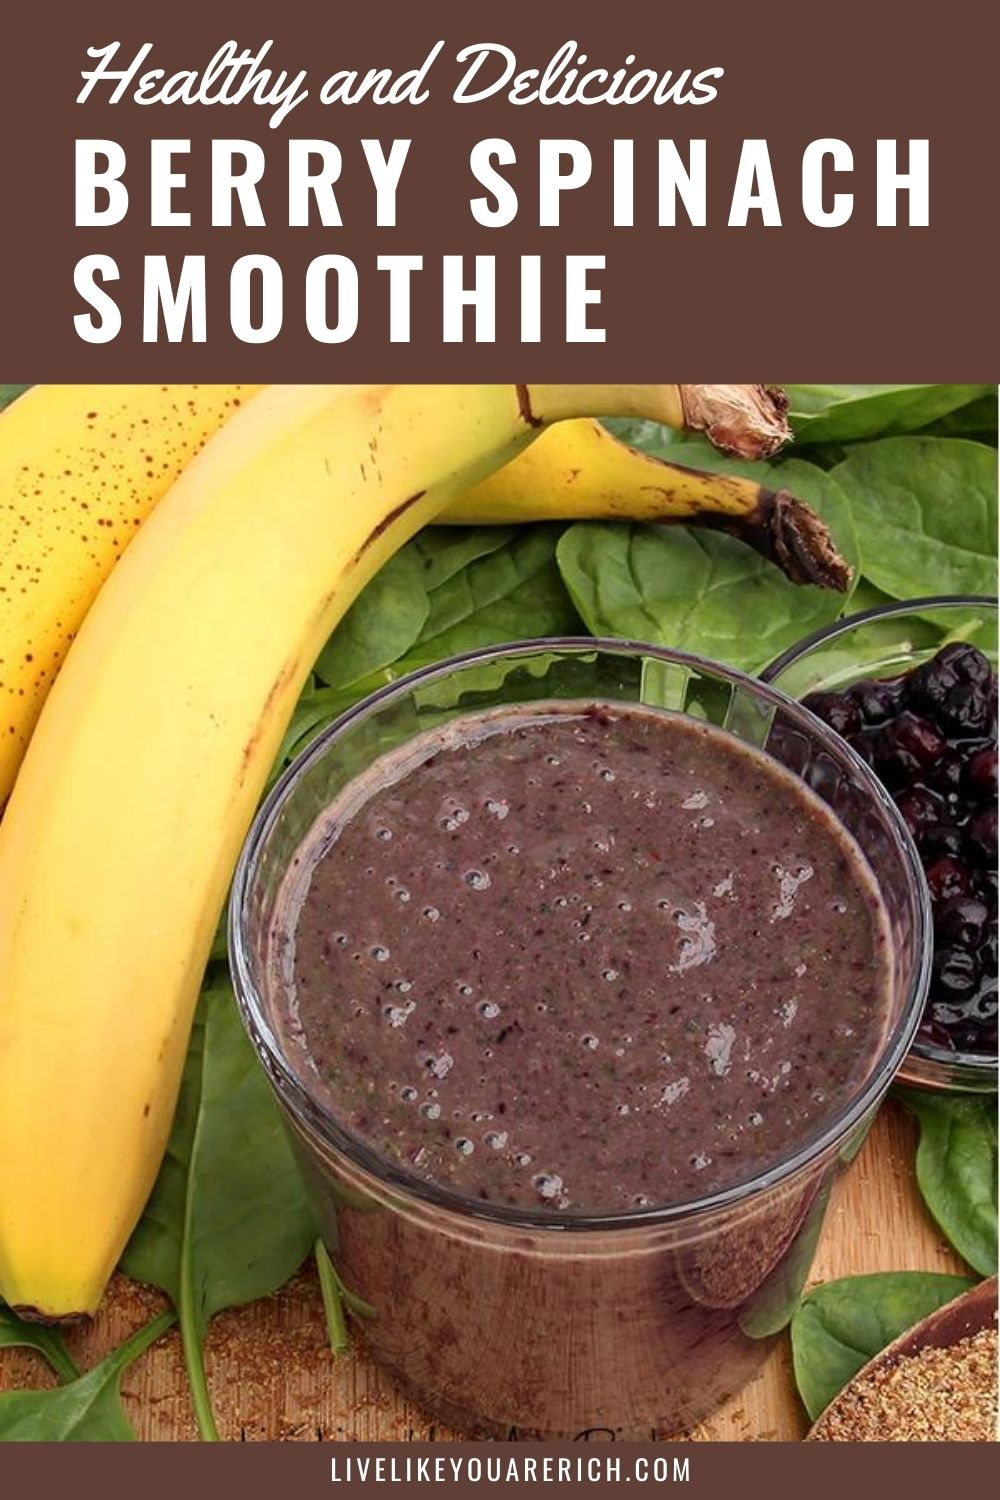 "This Berry Spinach Smoothie is my favorite 'green"" drink smoothie. It's packed with vitamins, minerals, antioxidants, and has a good amount of protein. The flavor is actually fairly sweet and delicious."